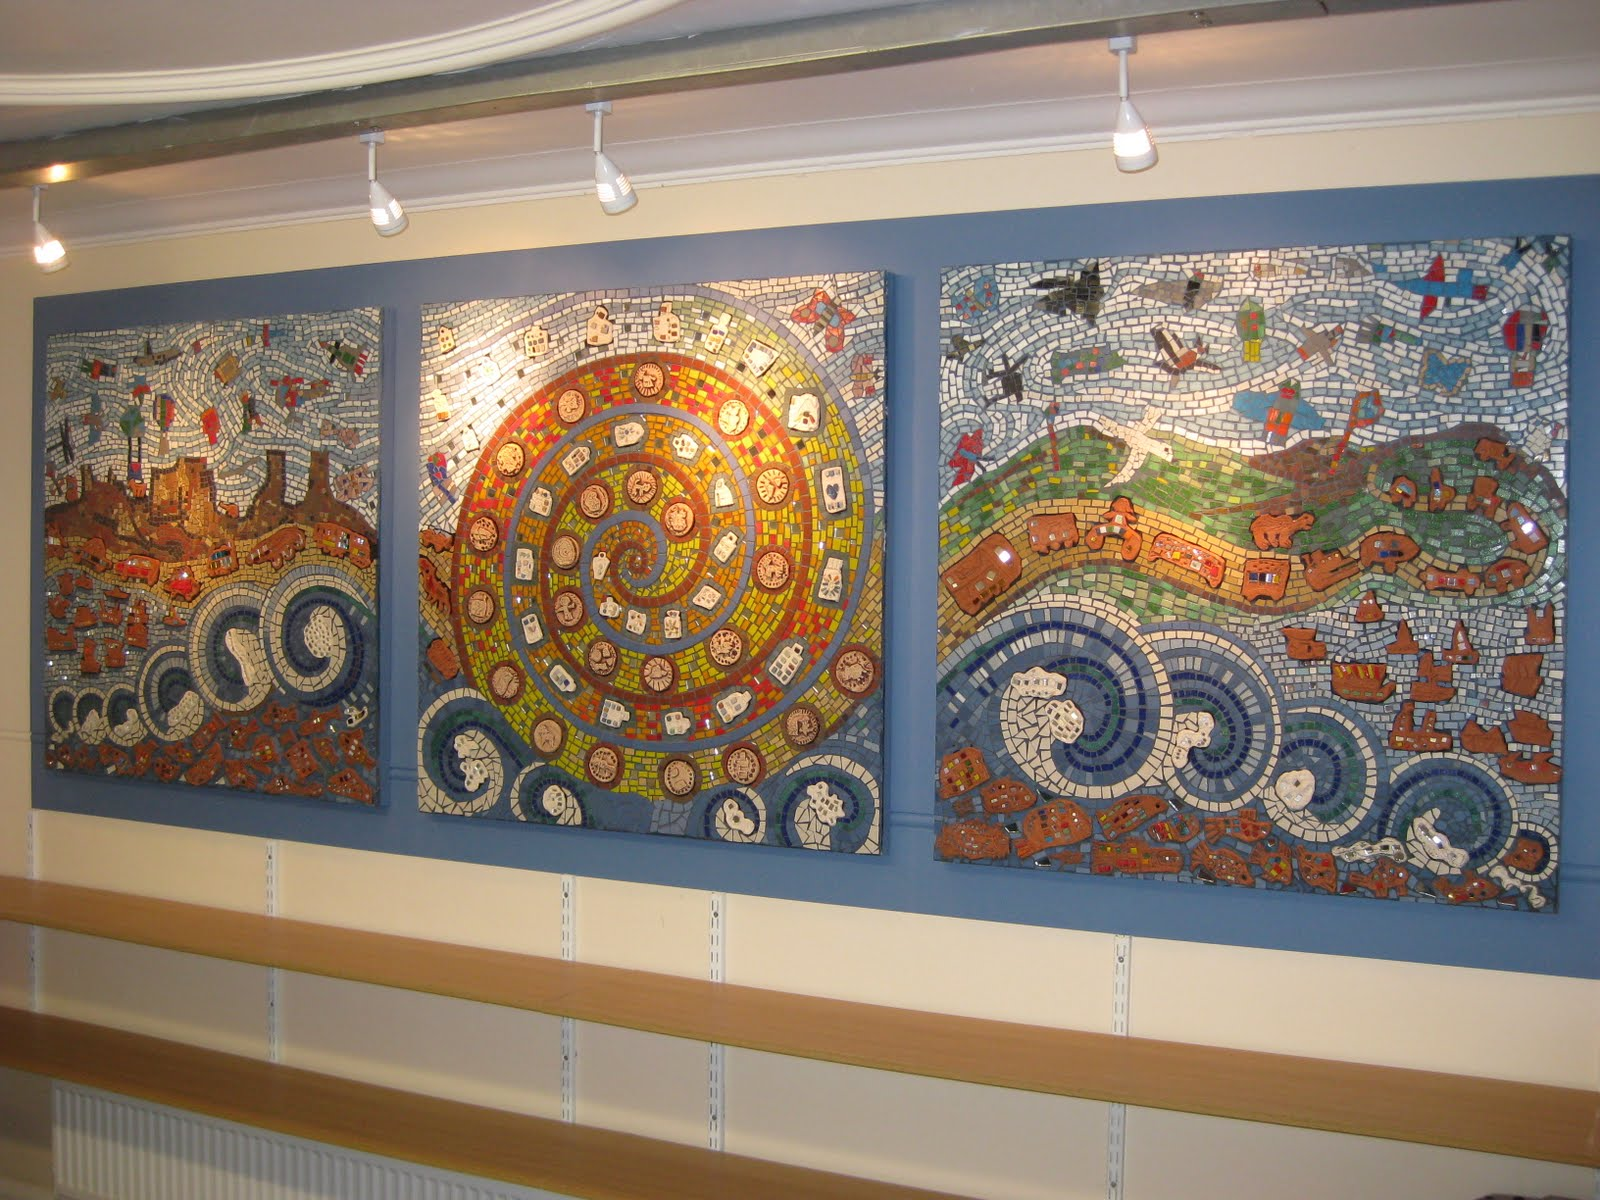 Momosaic mosaic and other art works by maureen o 39 kane for Mural mosaic